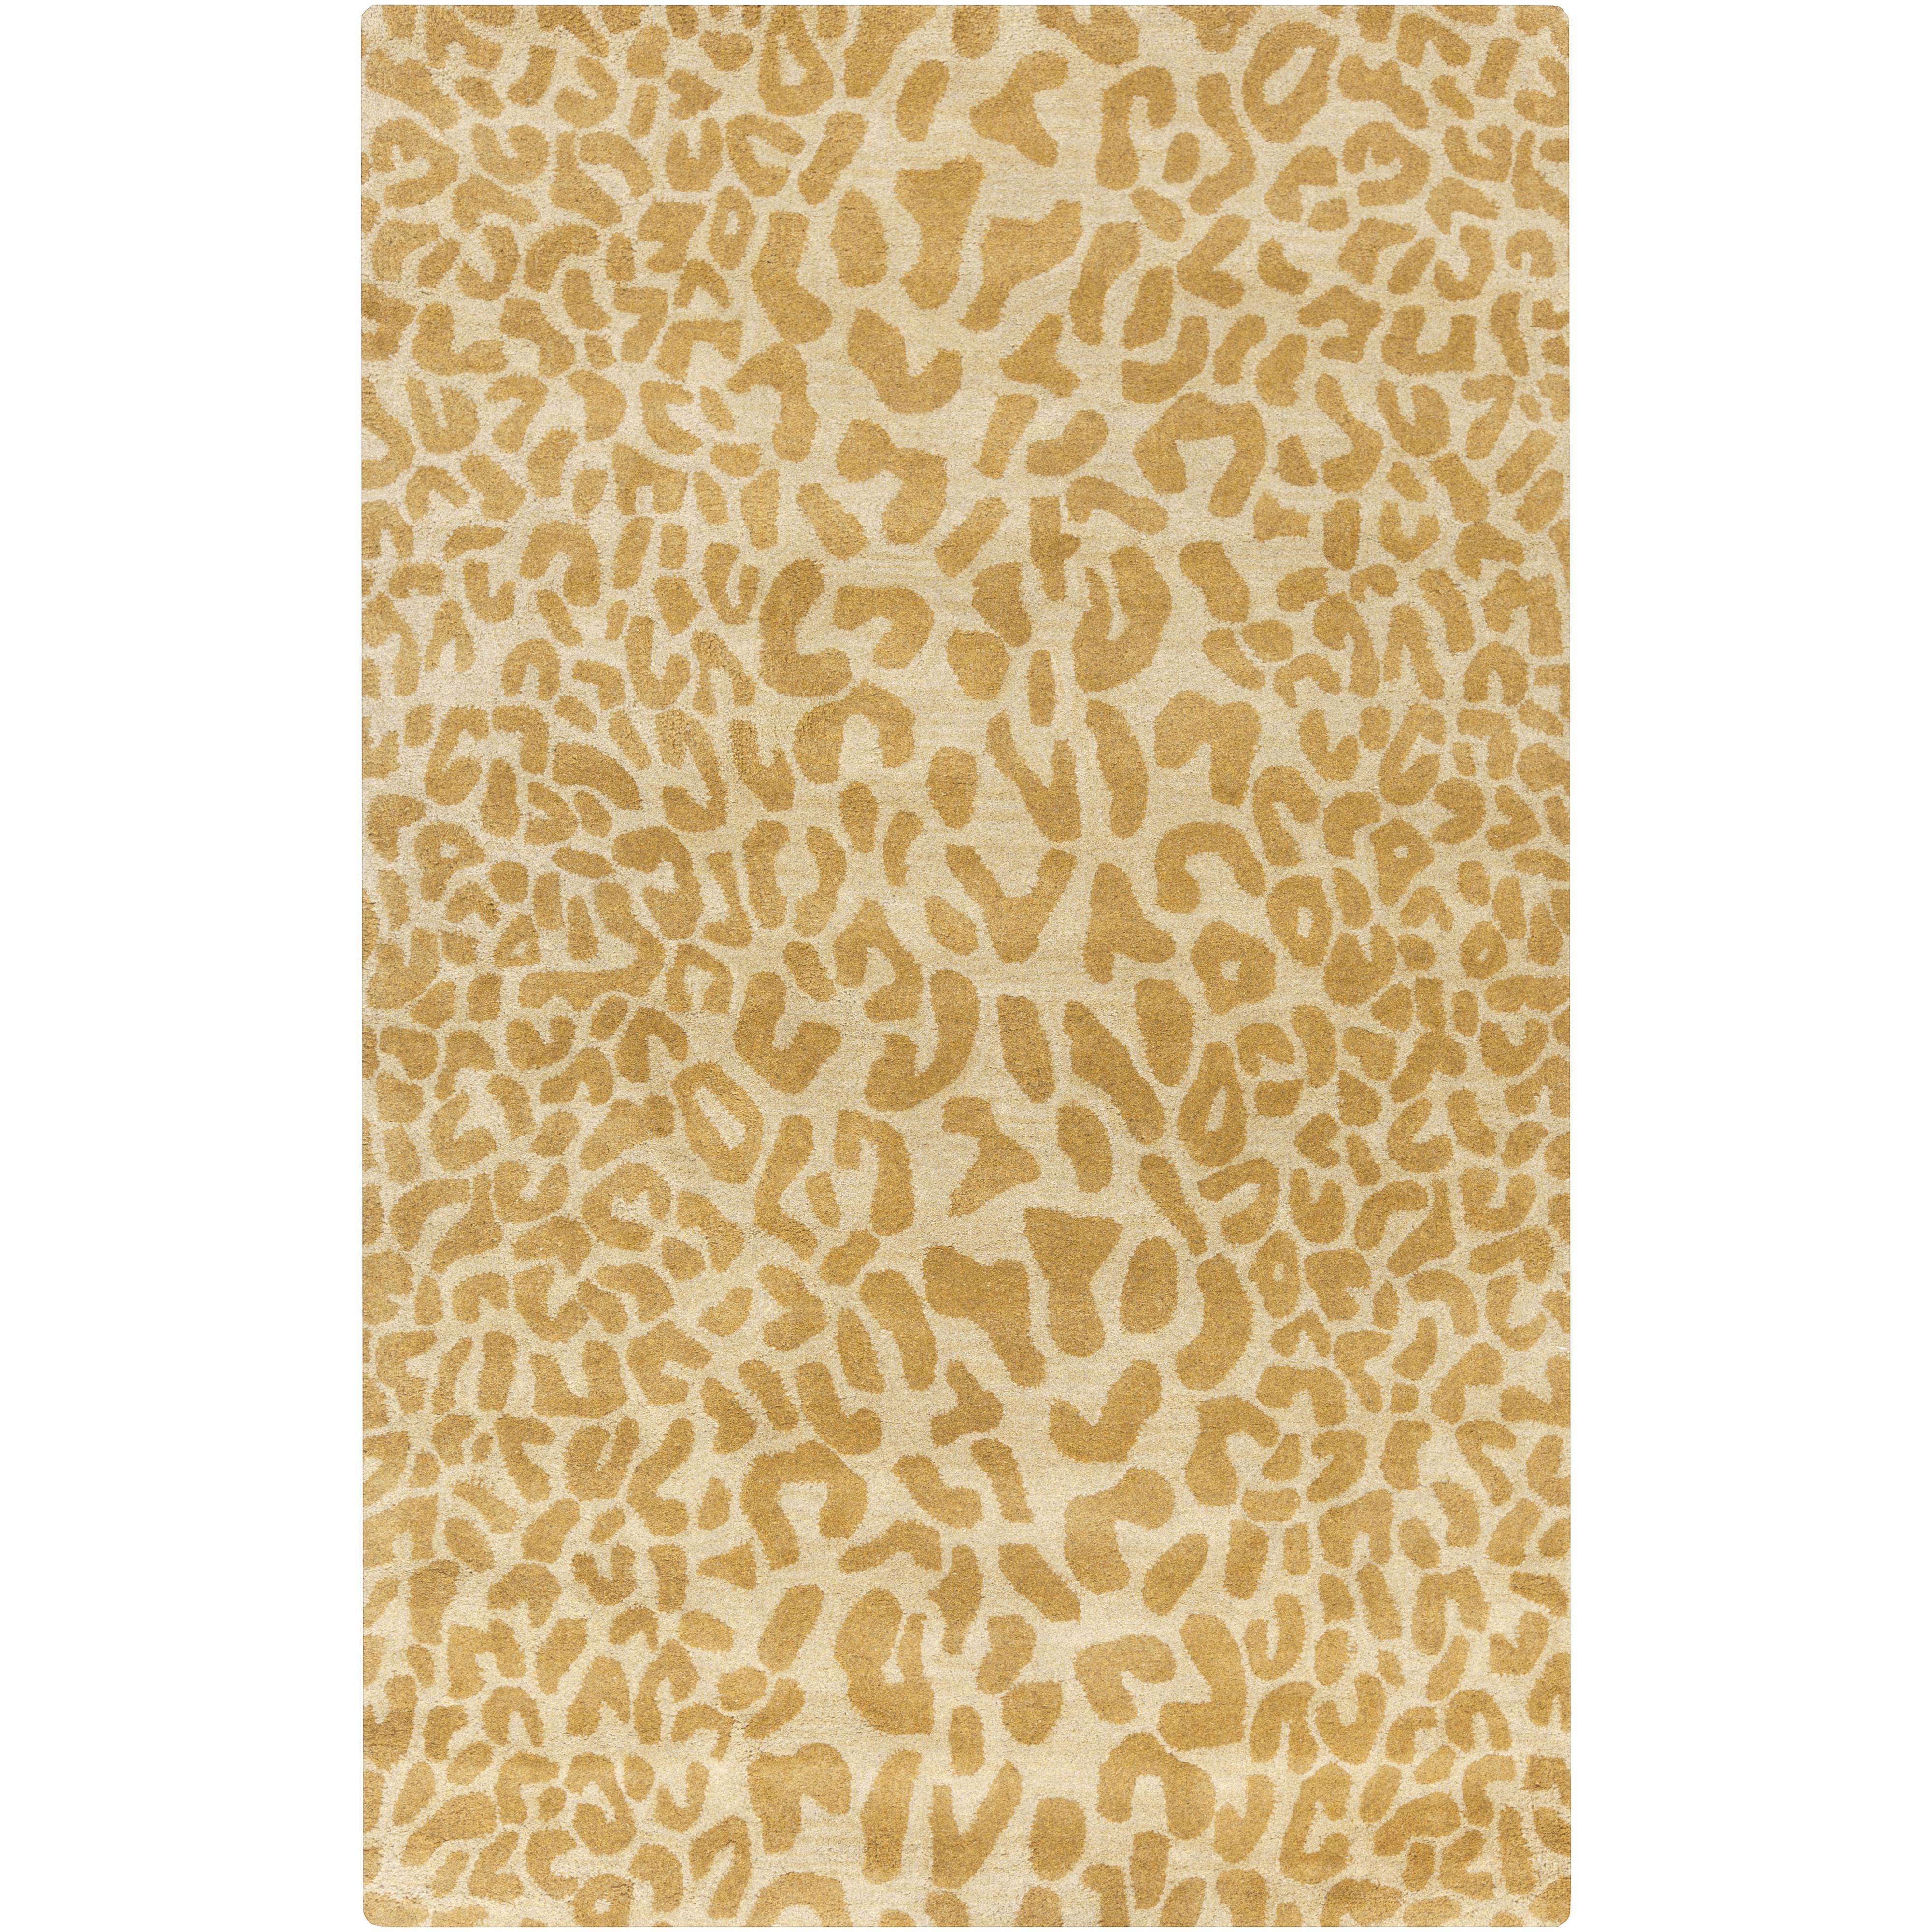 Athena 5' x 8' by Surya at Fashion Furniture